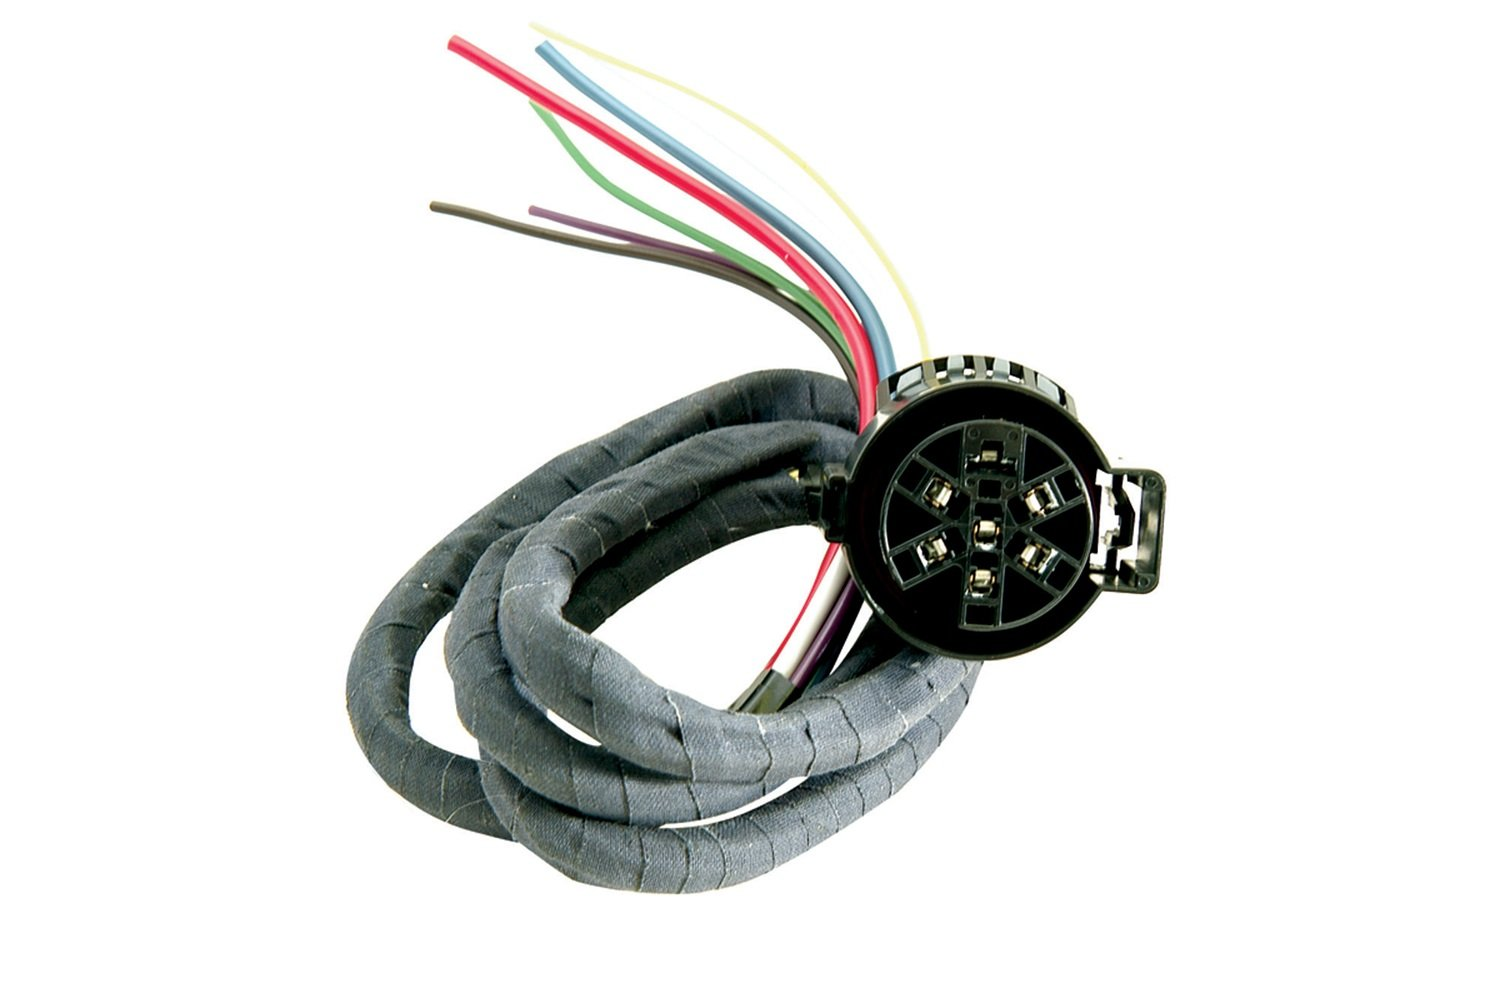 619JgDjQ1WL._SL1500_ amazon com hopkins 40985 universal multi tow harness connector hopkins towing solutions - wire harness at n-0.co